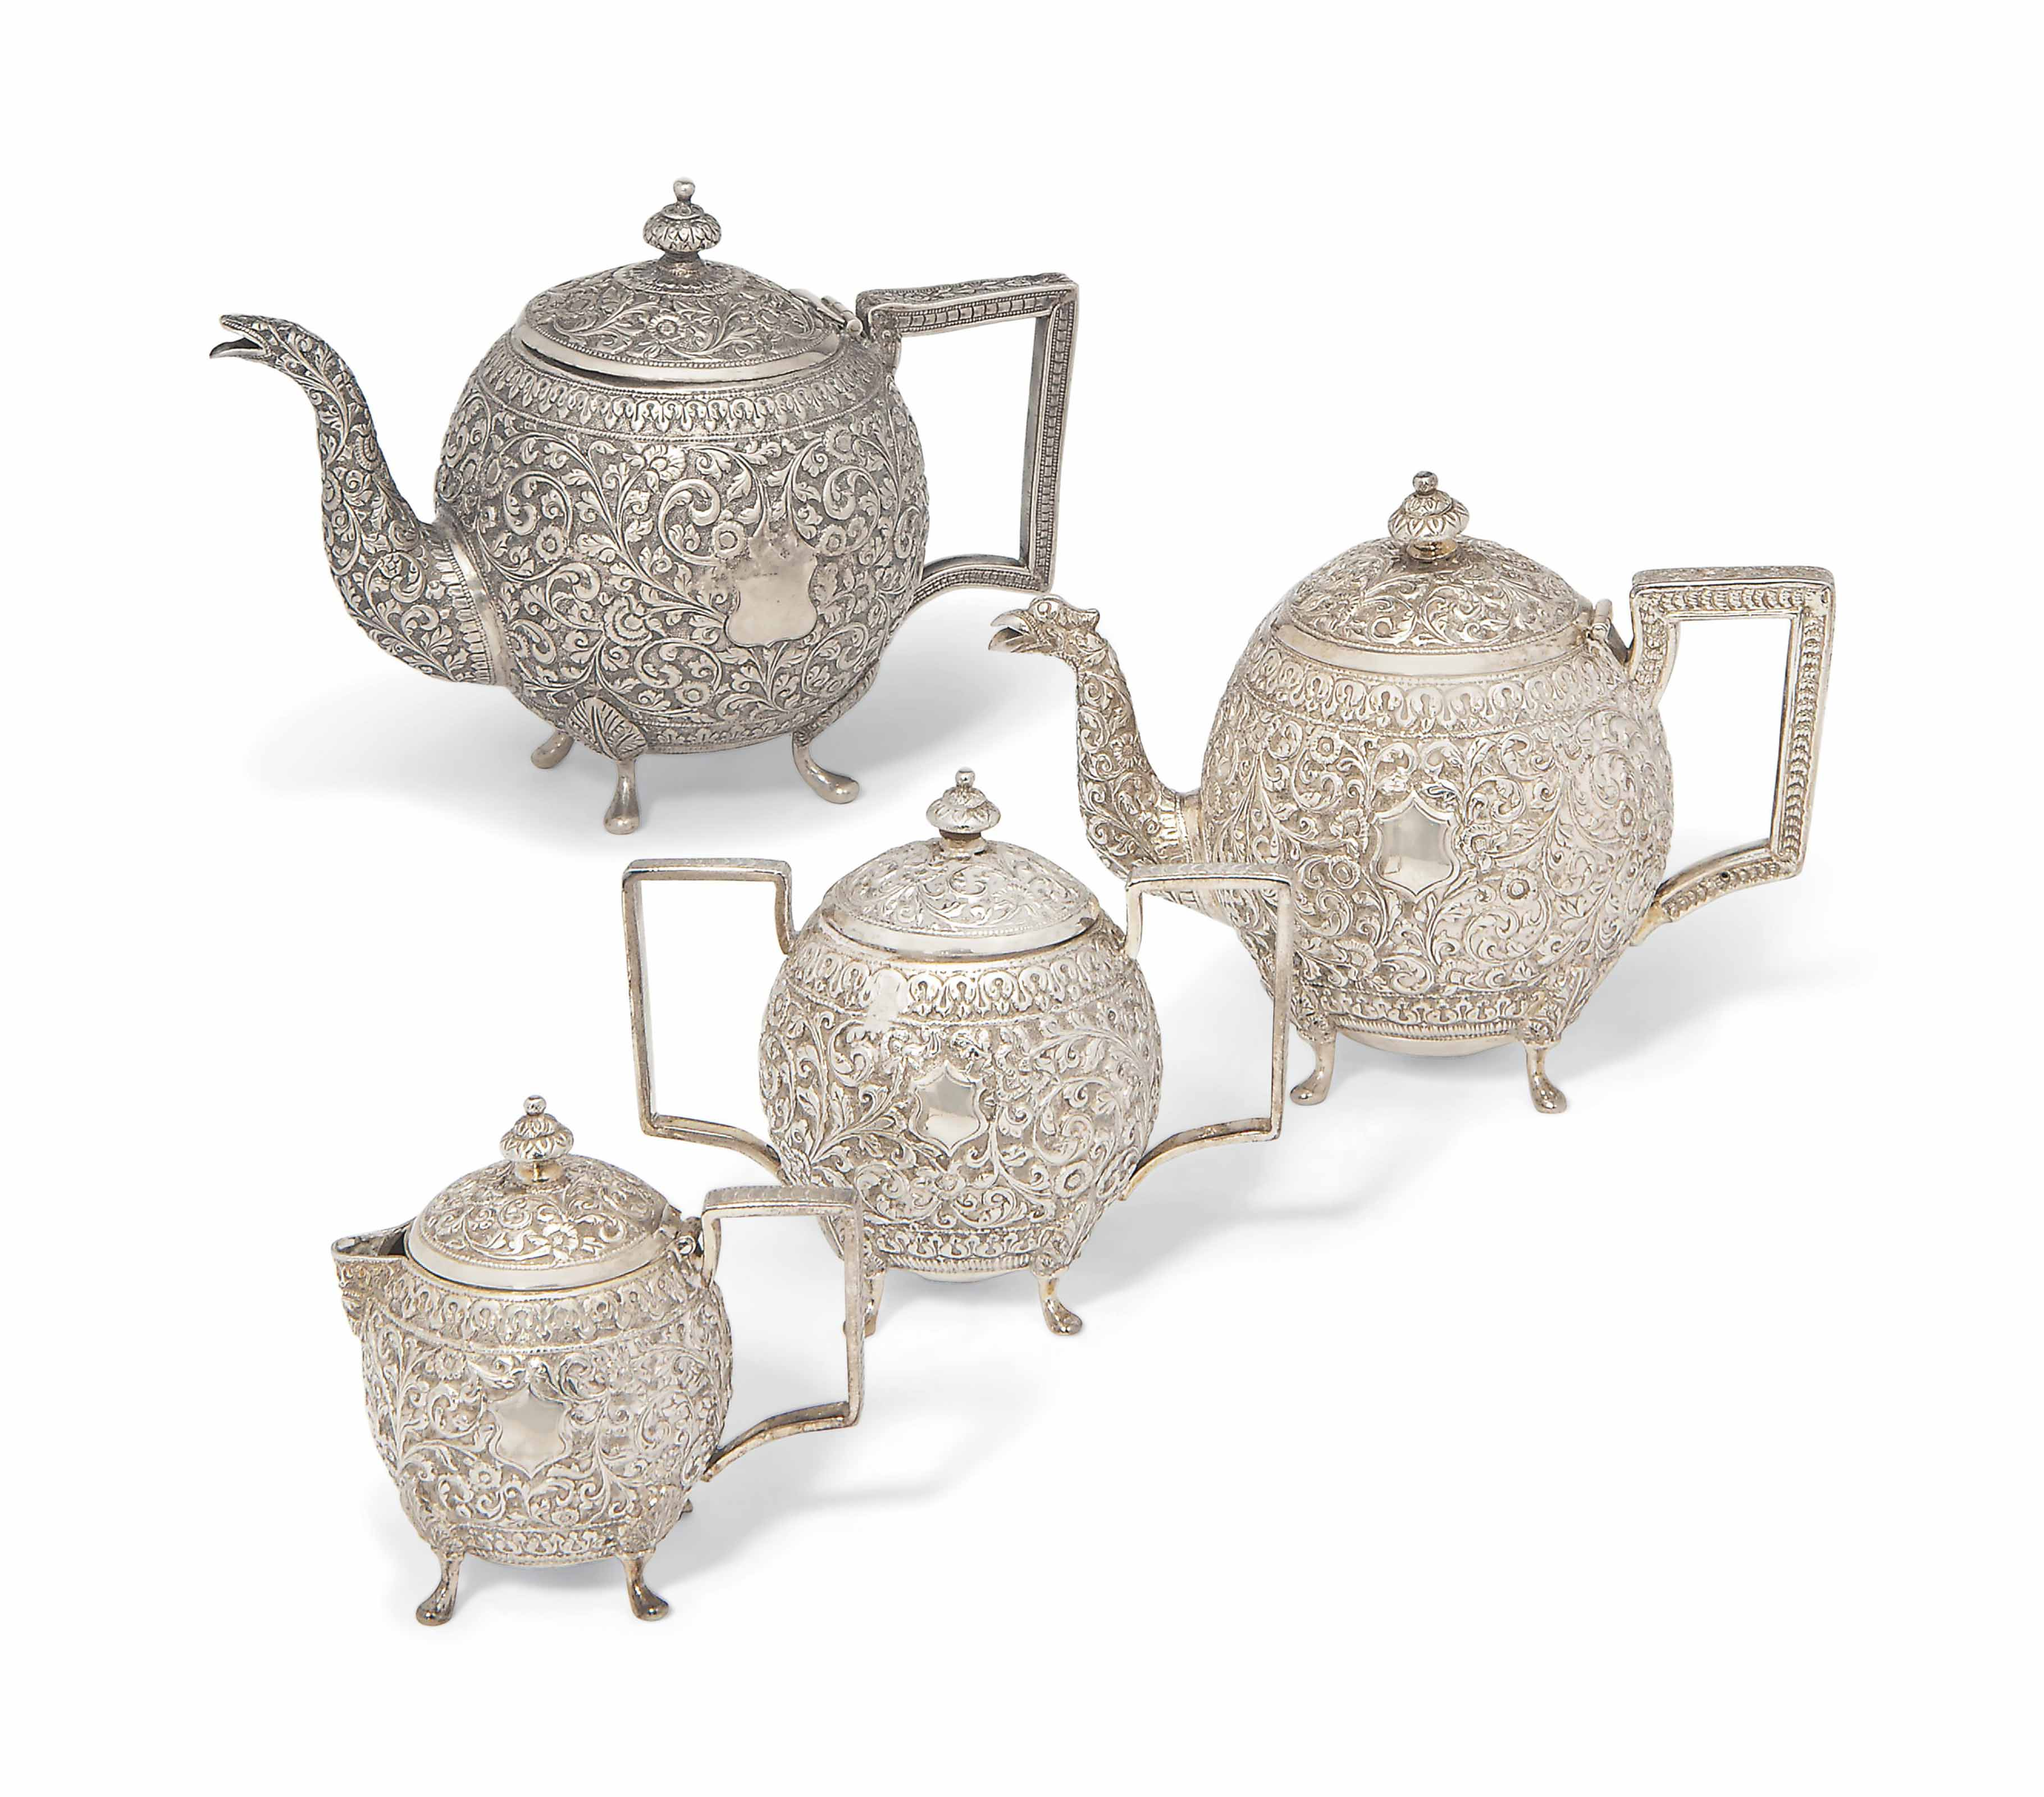 A SILVER REPOUSSÉ TEA SET